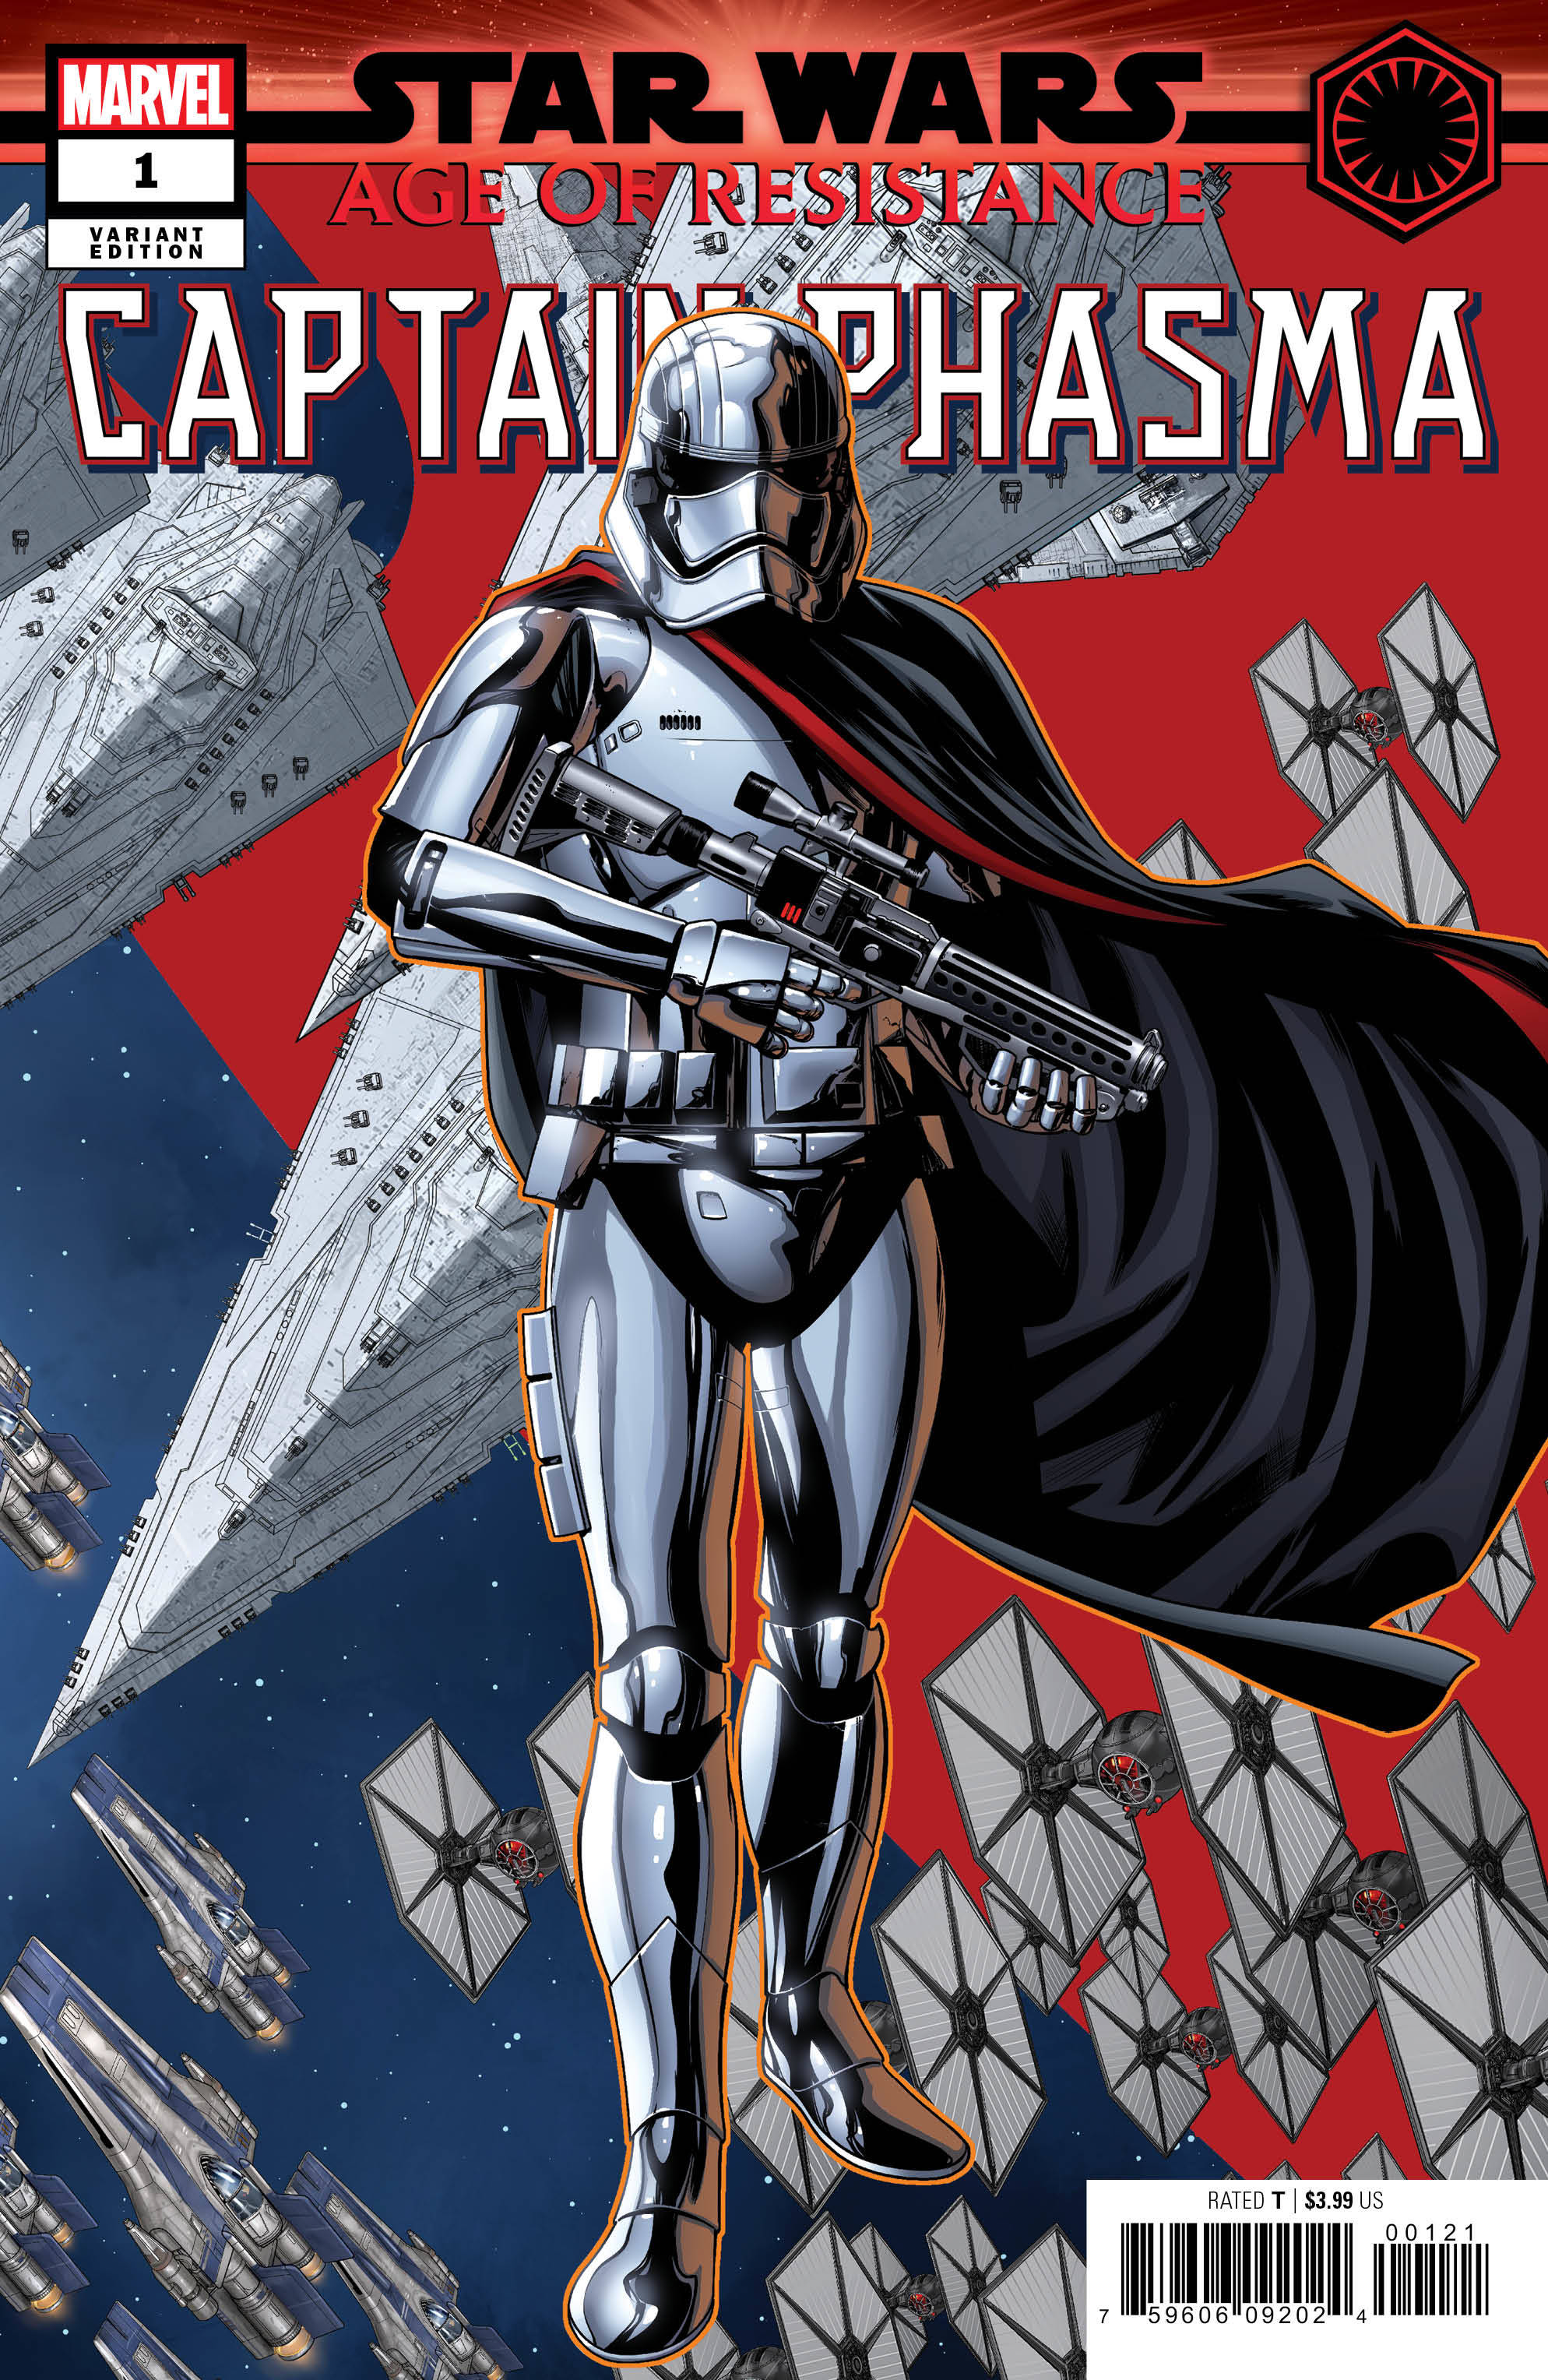 STAR WARS AOR CAPTAIN PHASMA 1 MCKONE PUZZLE PC VAR.jpg